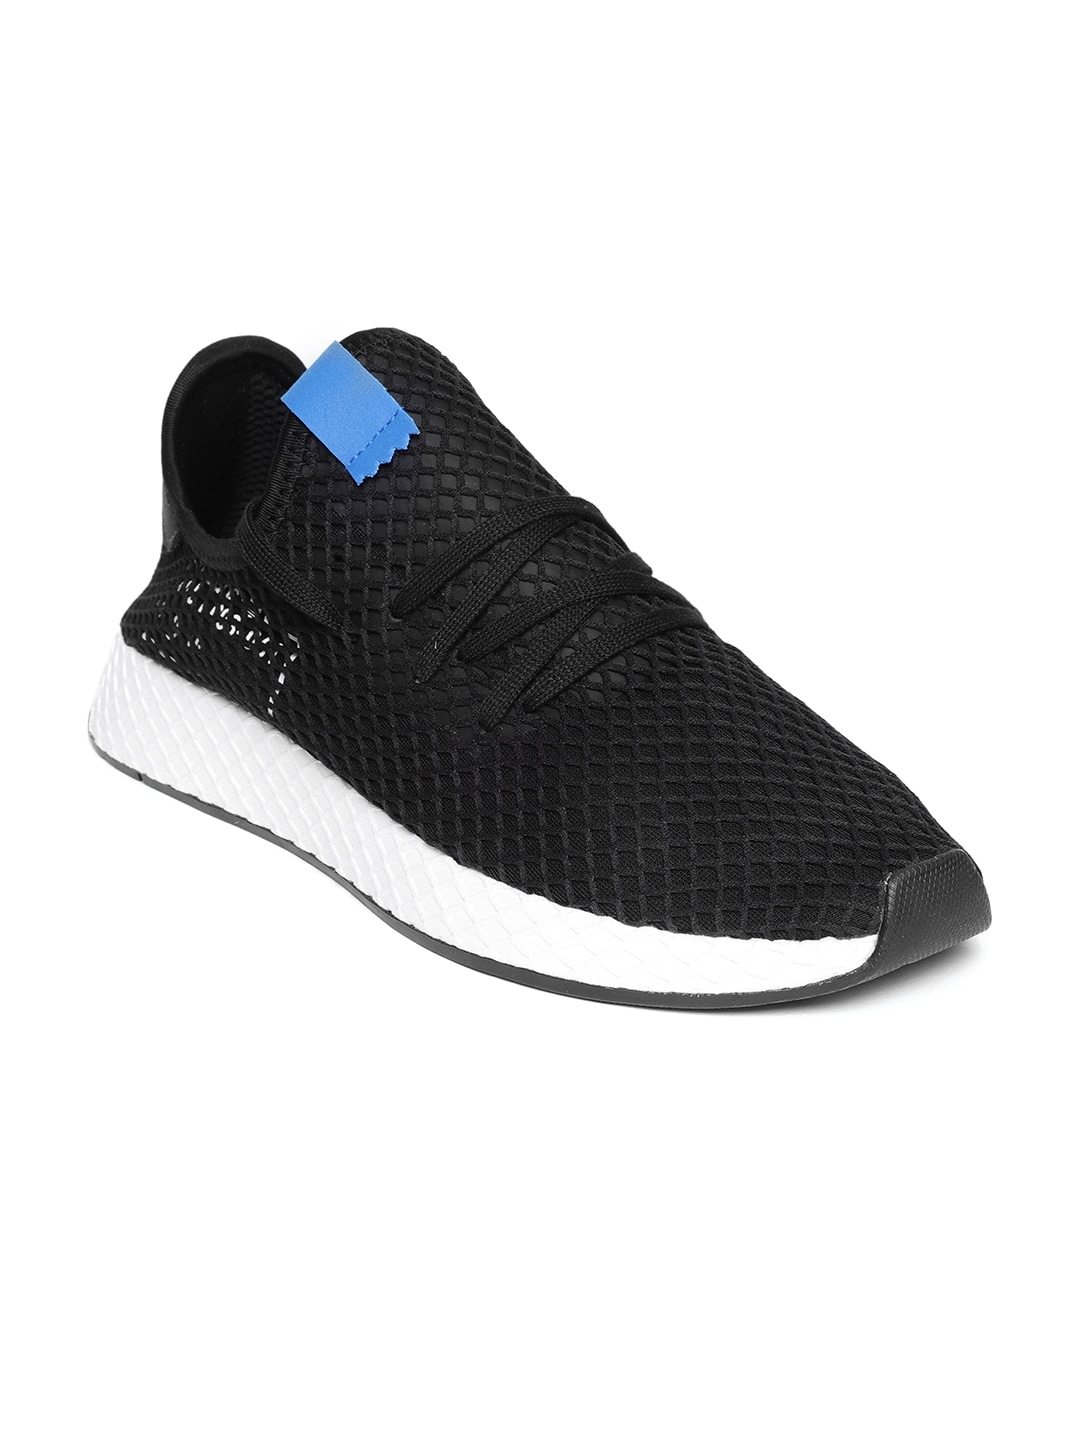 buy popular 16fbc 243cf Adidas Shoes - Buy Adidas Shoes for Men   Women Online - Myntra